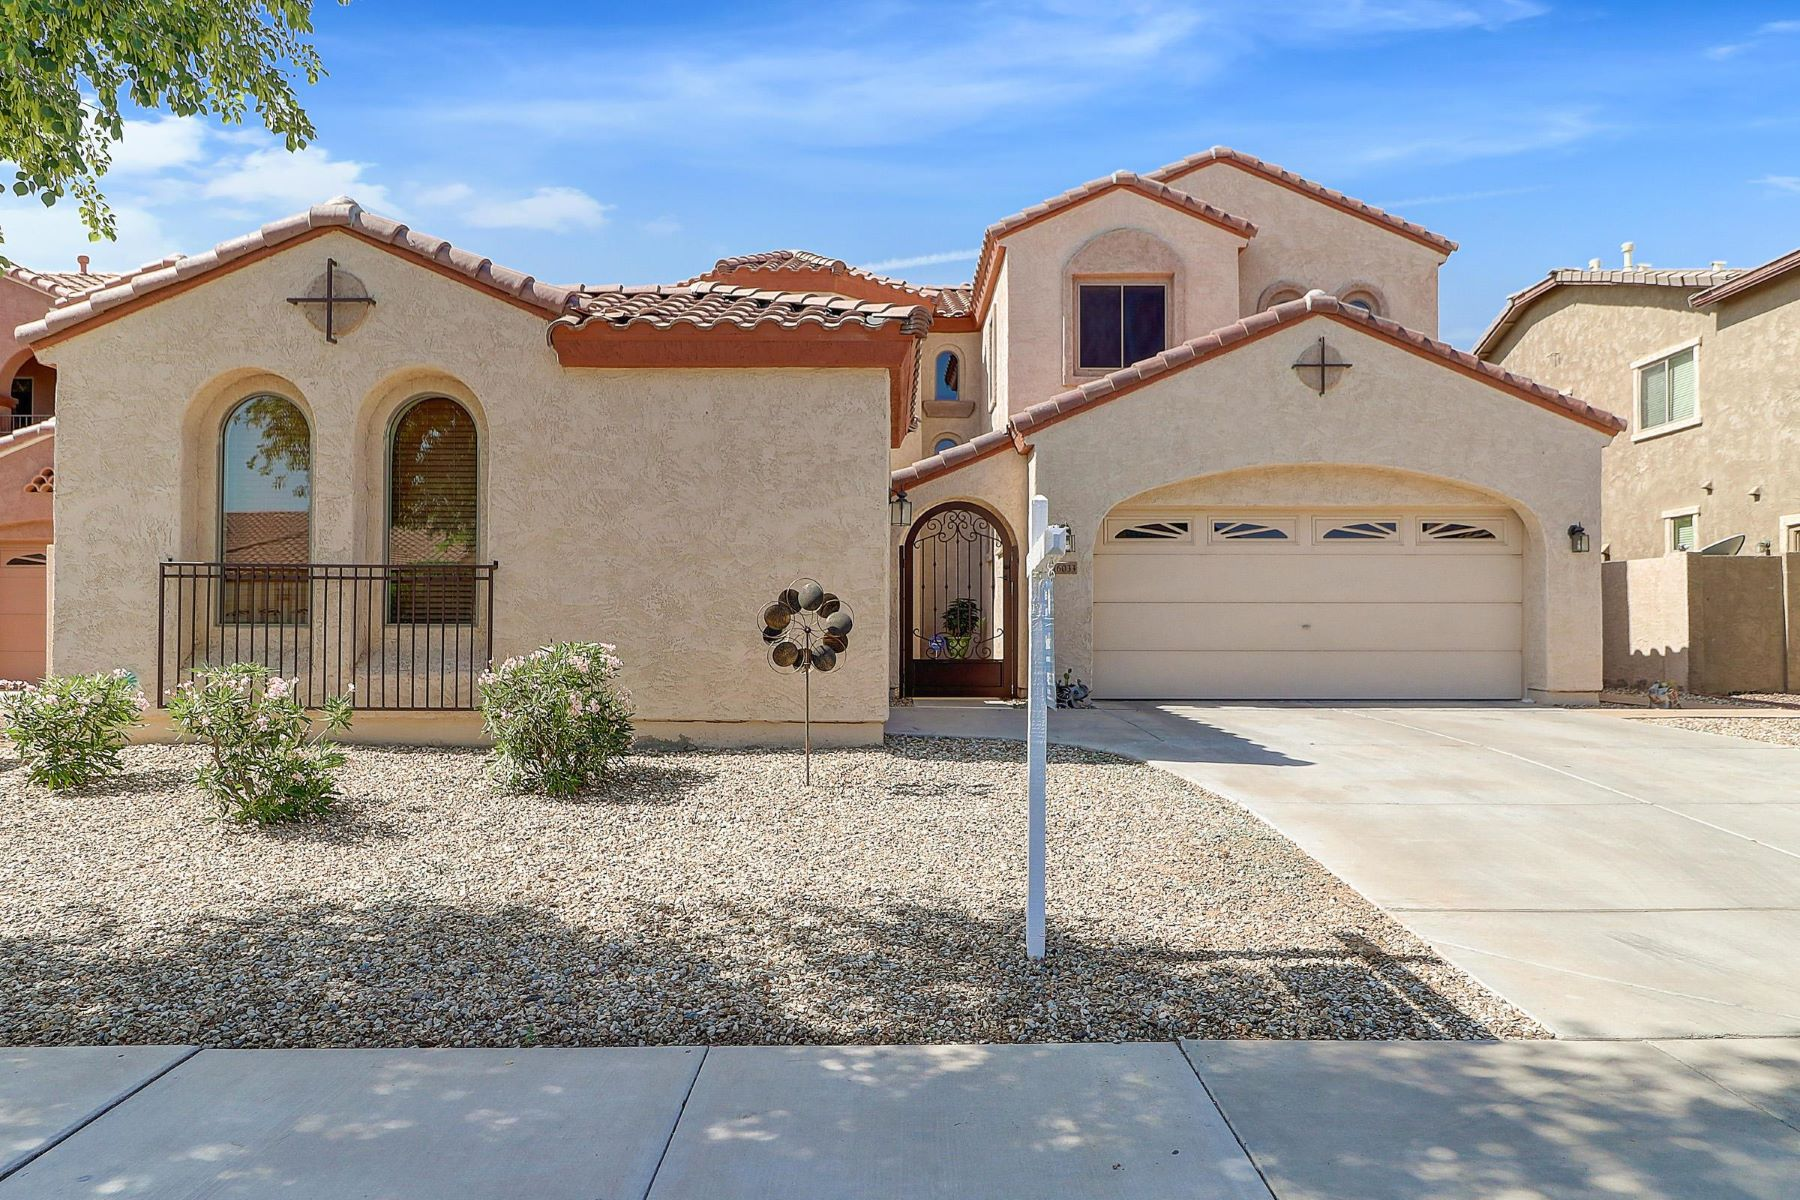 Single Family Homes for Sale at Greer Ranch South 16033 W MESCAL ST Surprise, Arizona 85379 United States